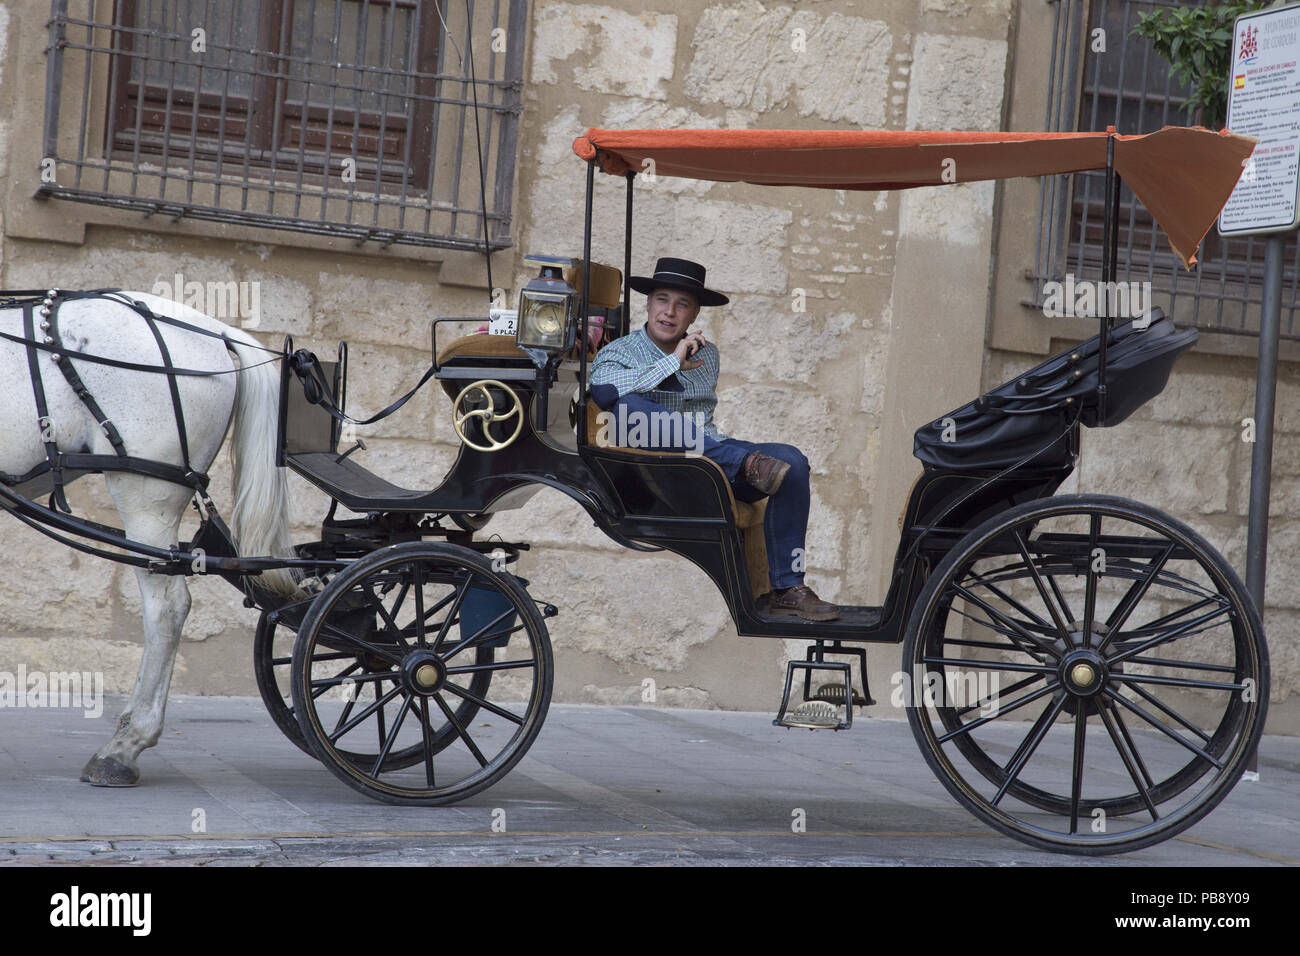 June 10, 2018 - CóRdoba, Spain - Carriage driver with the cordobes hat.Córdoba was the capital of the Later Hispania in the times of the Roman Republic, or of the Bética province during the Roman Empire and the Caliphate of Córdoba during the Muslim era. Credit: Lito Lizana/SOPA Images/ZUMA Wire/Alamy Live News Stock Photo